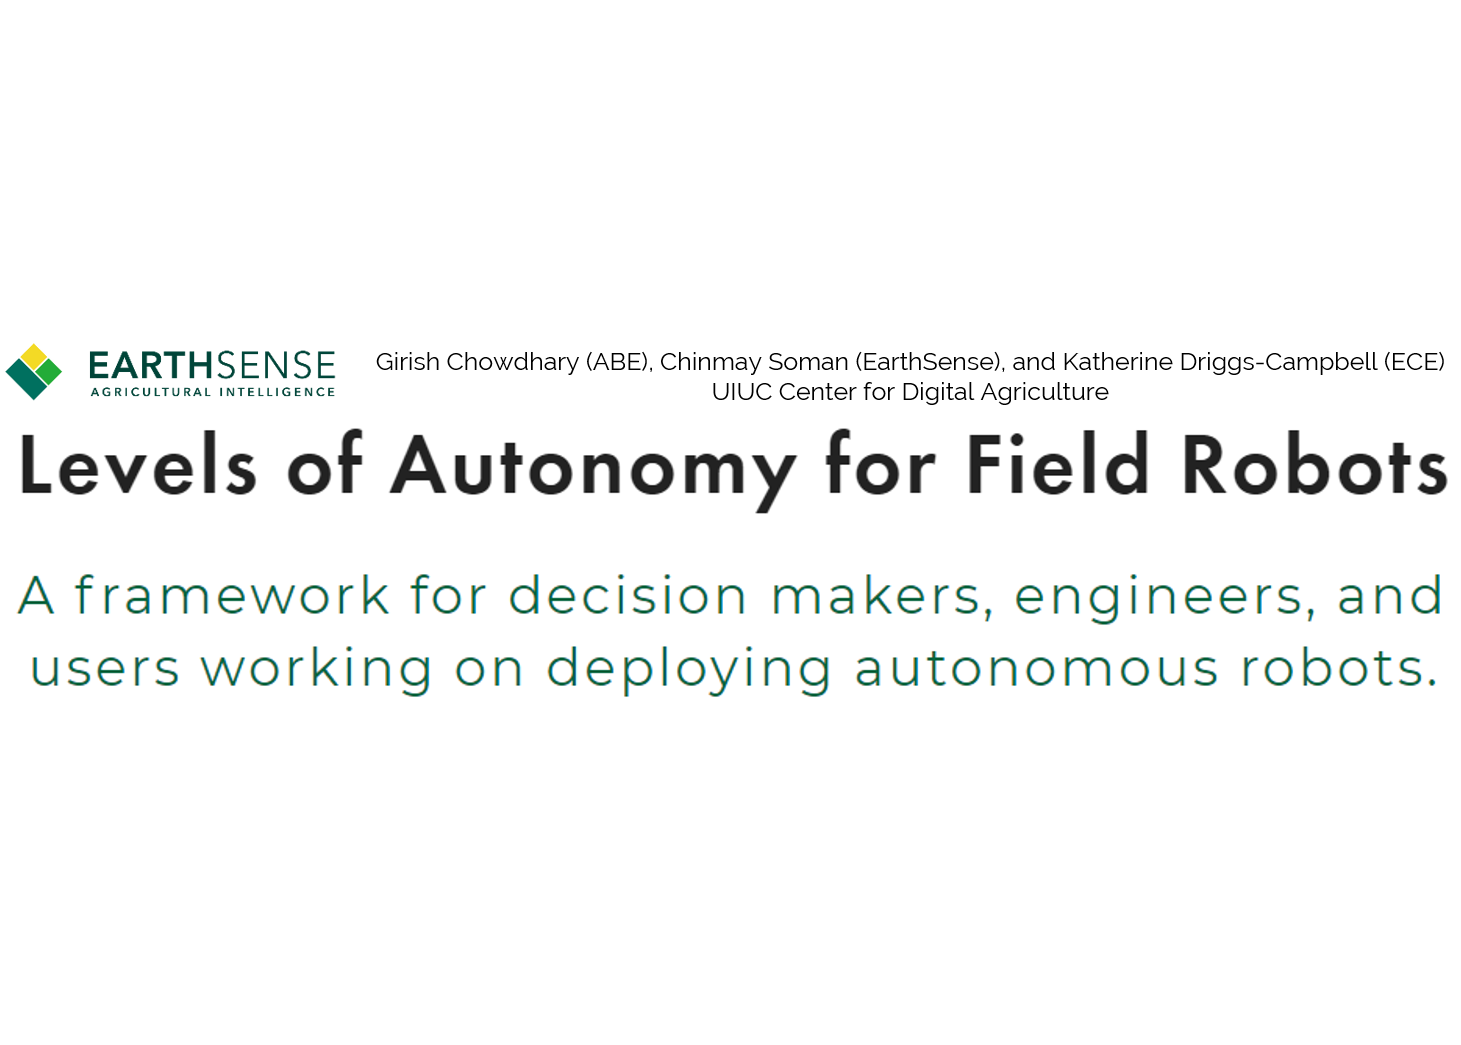 We present a framework that will enable engineers, users, and decision makers to systematically evaluate the autonomy of real-world robotics systems and decide how they can best benefit from this rapidly improving technology.